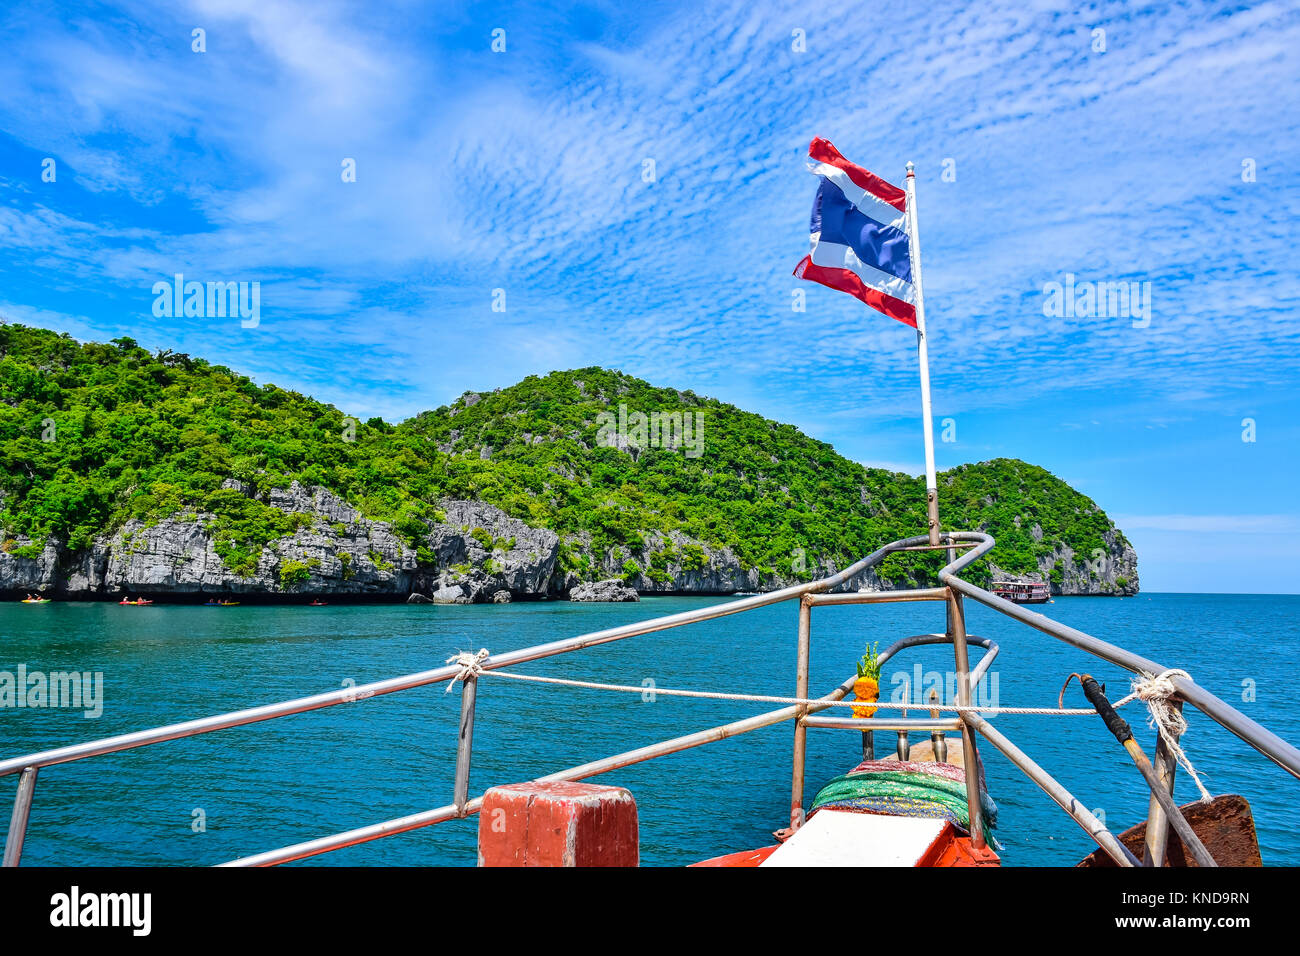 Boat Tropical Beach Flag Stock Photos Amp Boat Tropical Beach Flag Stock Images Alamy